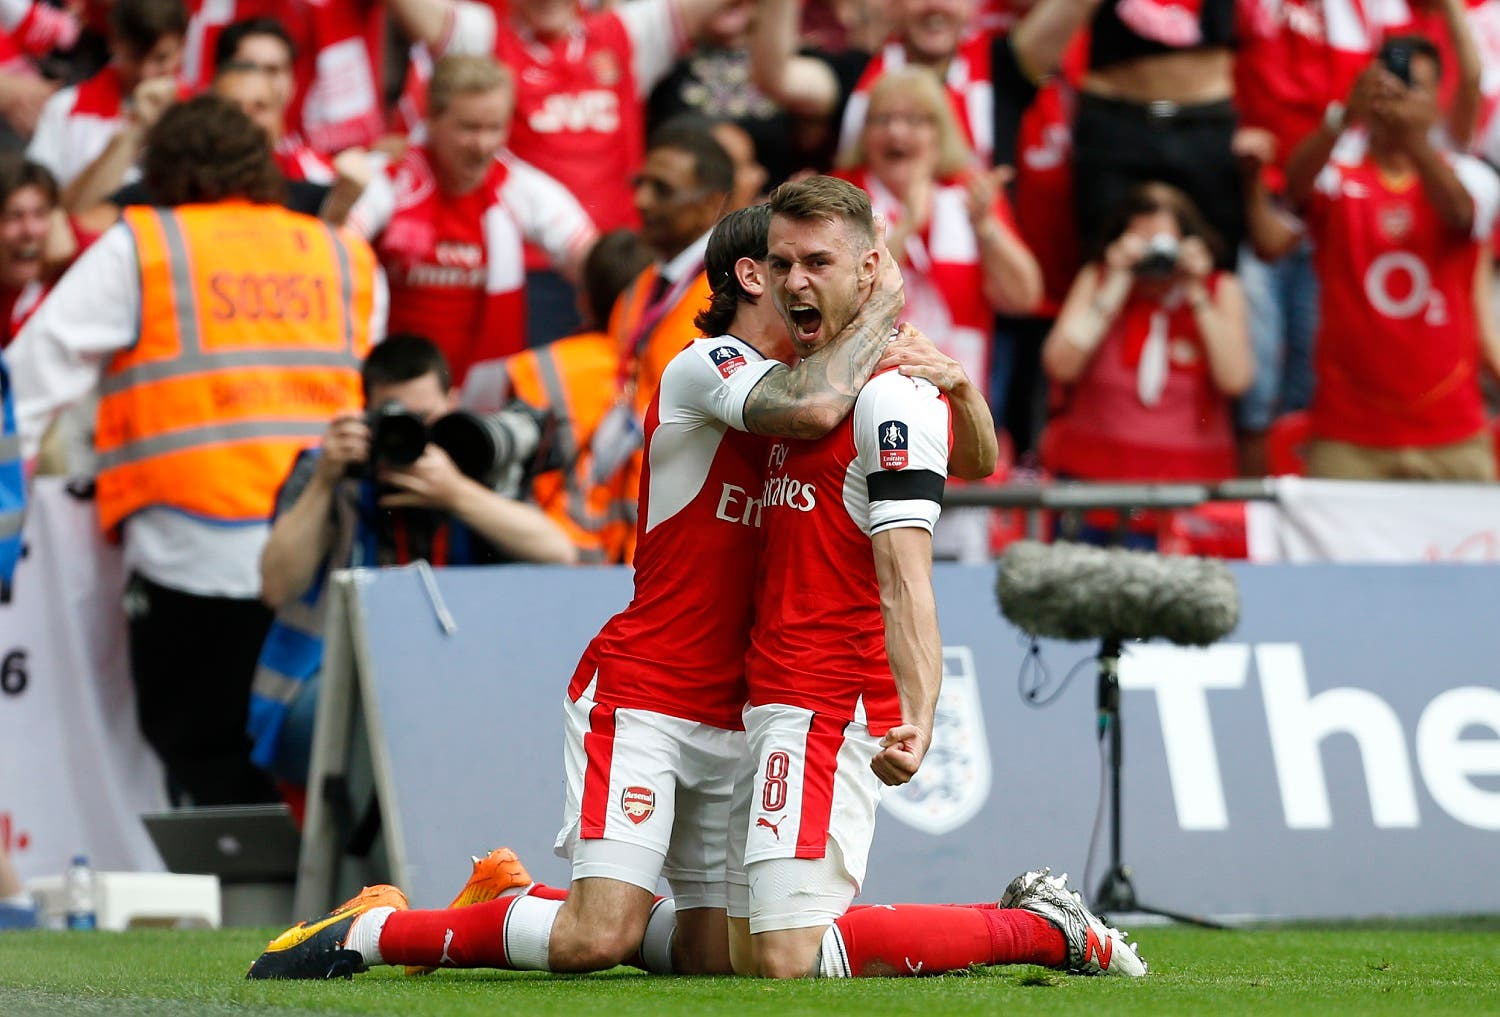 Arsenal's Welsh midfielder Aaron Ramsey (R) celebrates with Arsenal's Spanish defender Hector Bellerin after scoring their second goal during the English FA Cup final football match between Arsenal and Chelsea at Wembley stadium in London on May 27, 2017. (AFP)